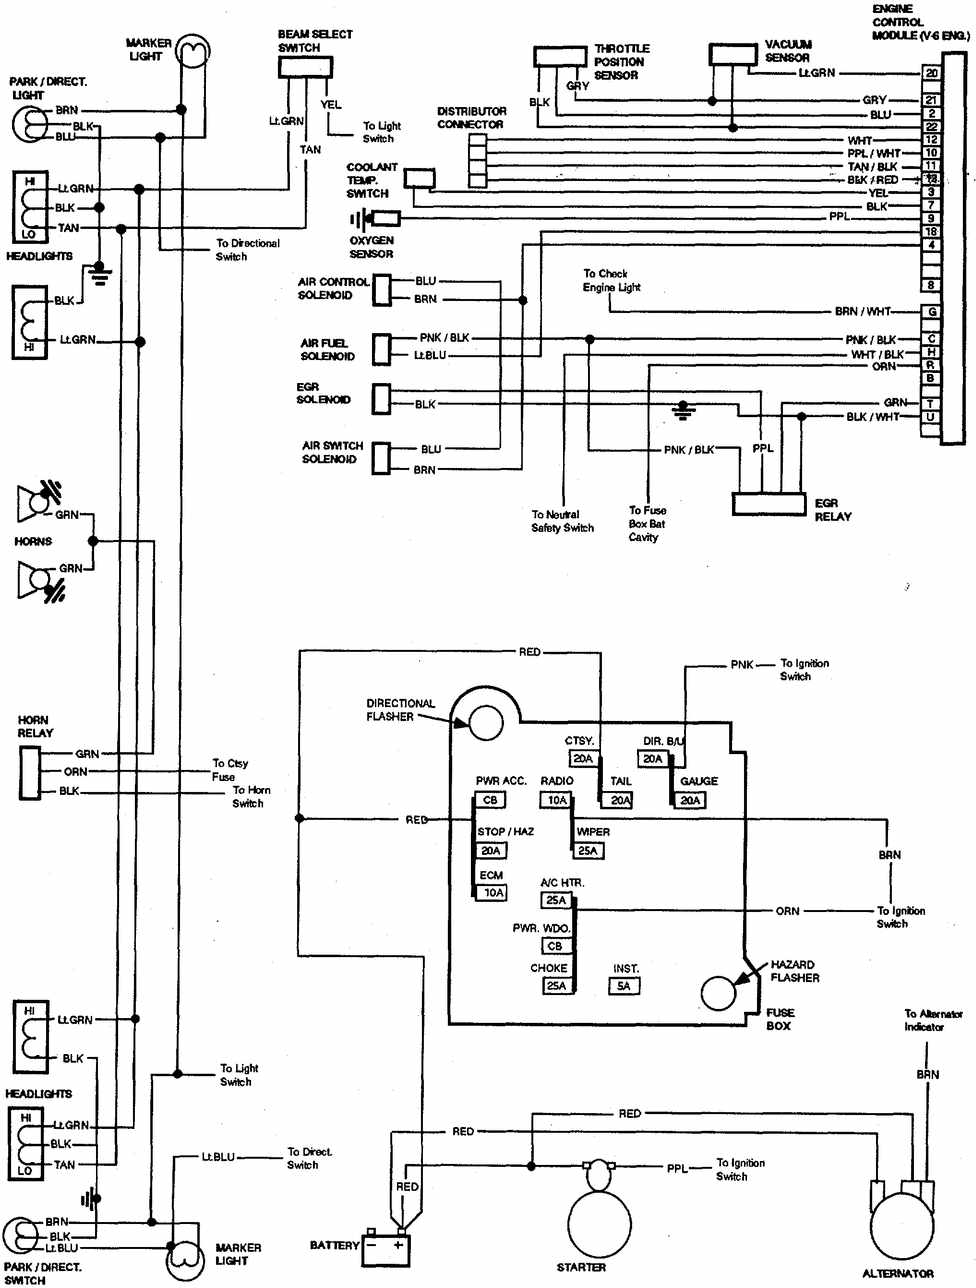 Monza Vega Wiring Diagram Guide And Troubleshooting Of Spyder Headlight 78 Chevy Caprice Todays Rh 11 9 12 1813weddingbarn Com 1980 1978